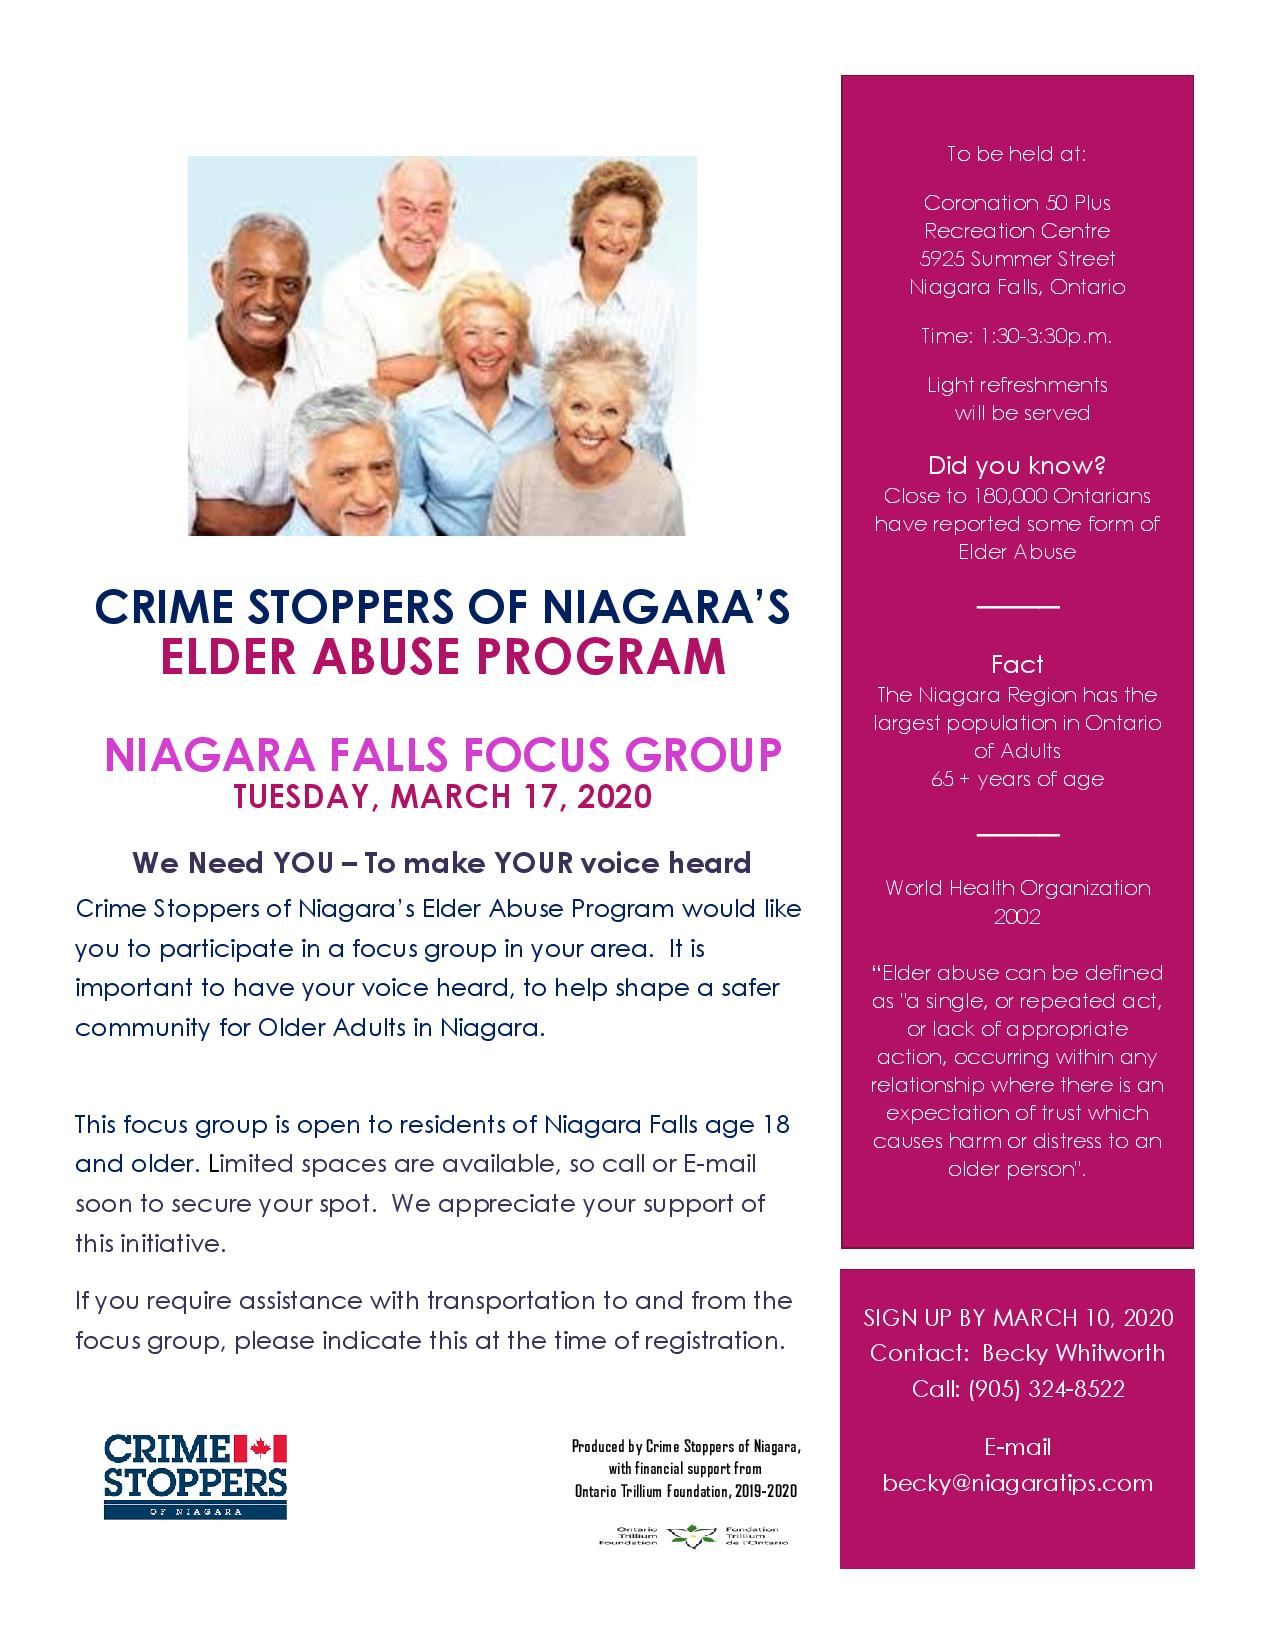 Focus Group by Crime Stoppers